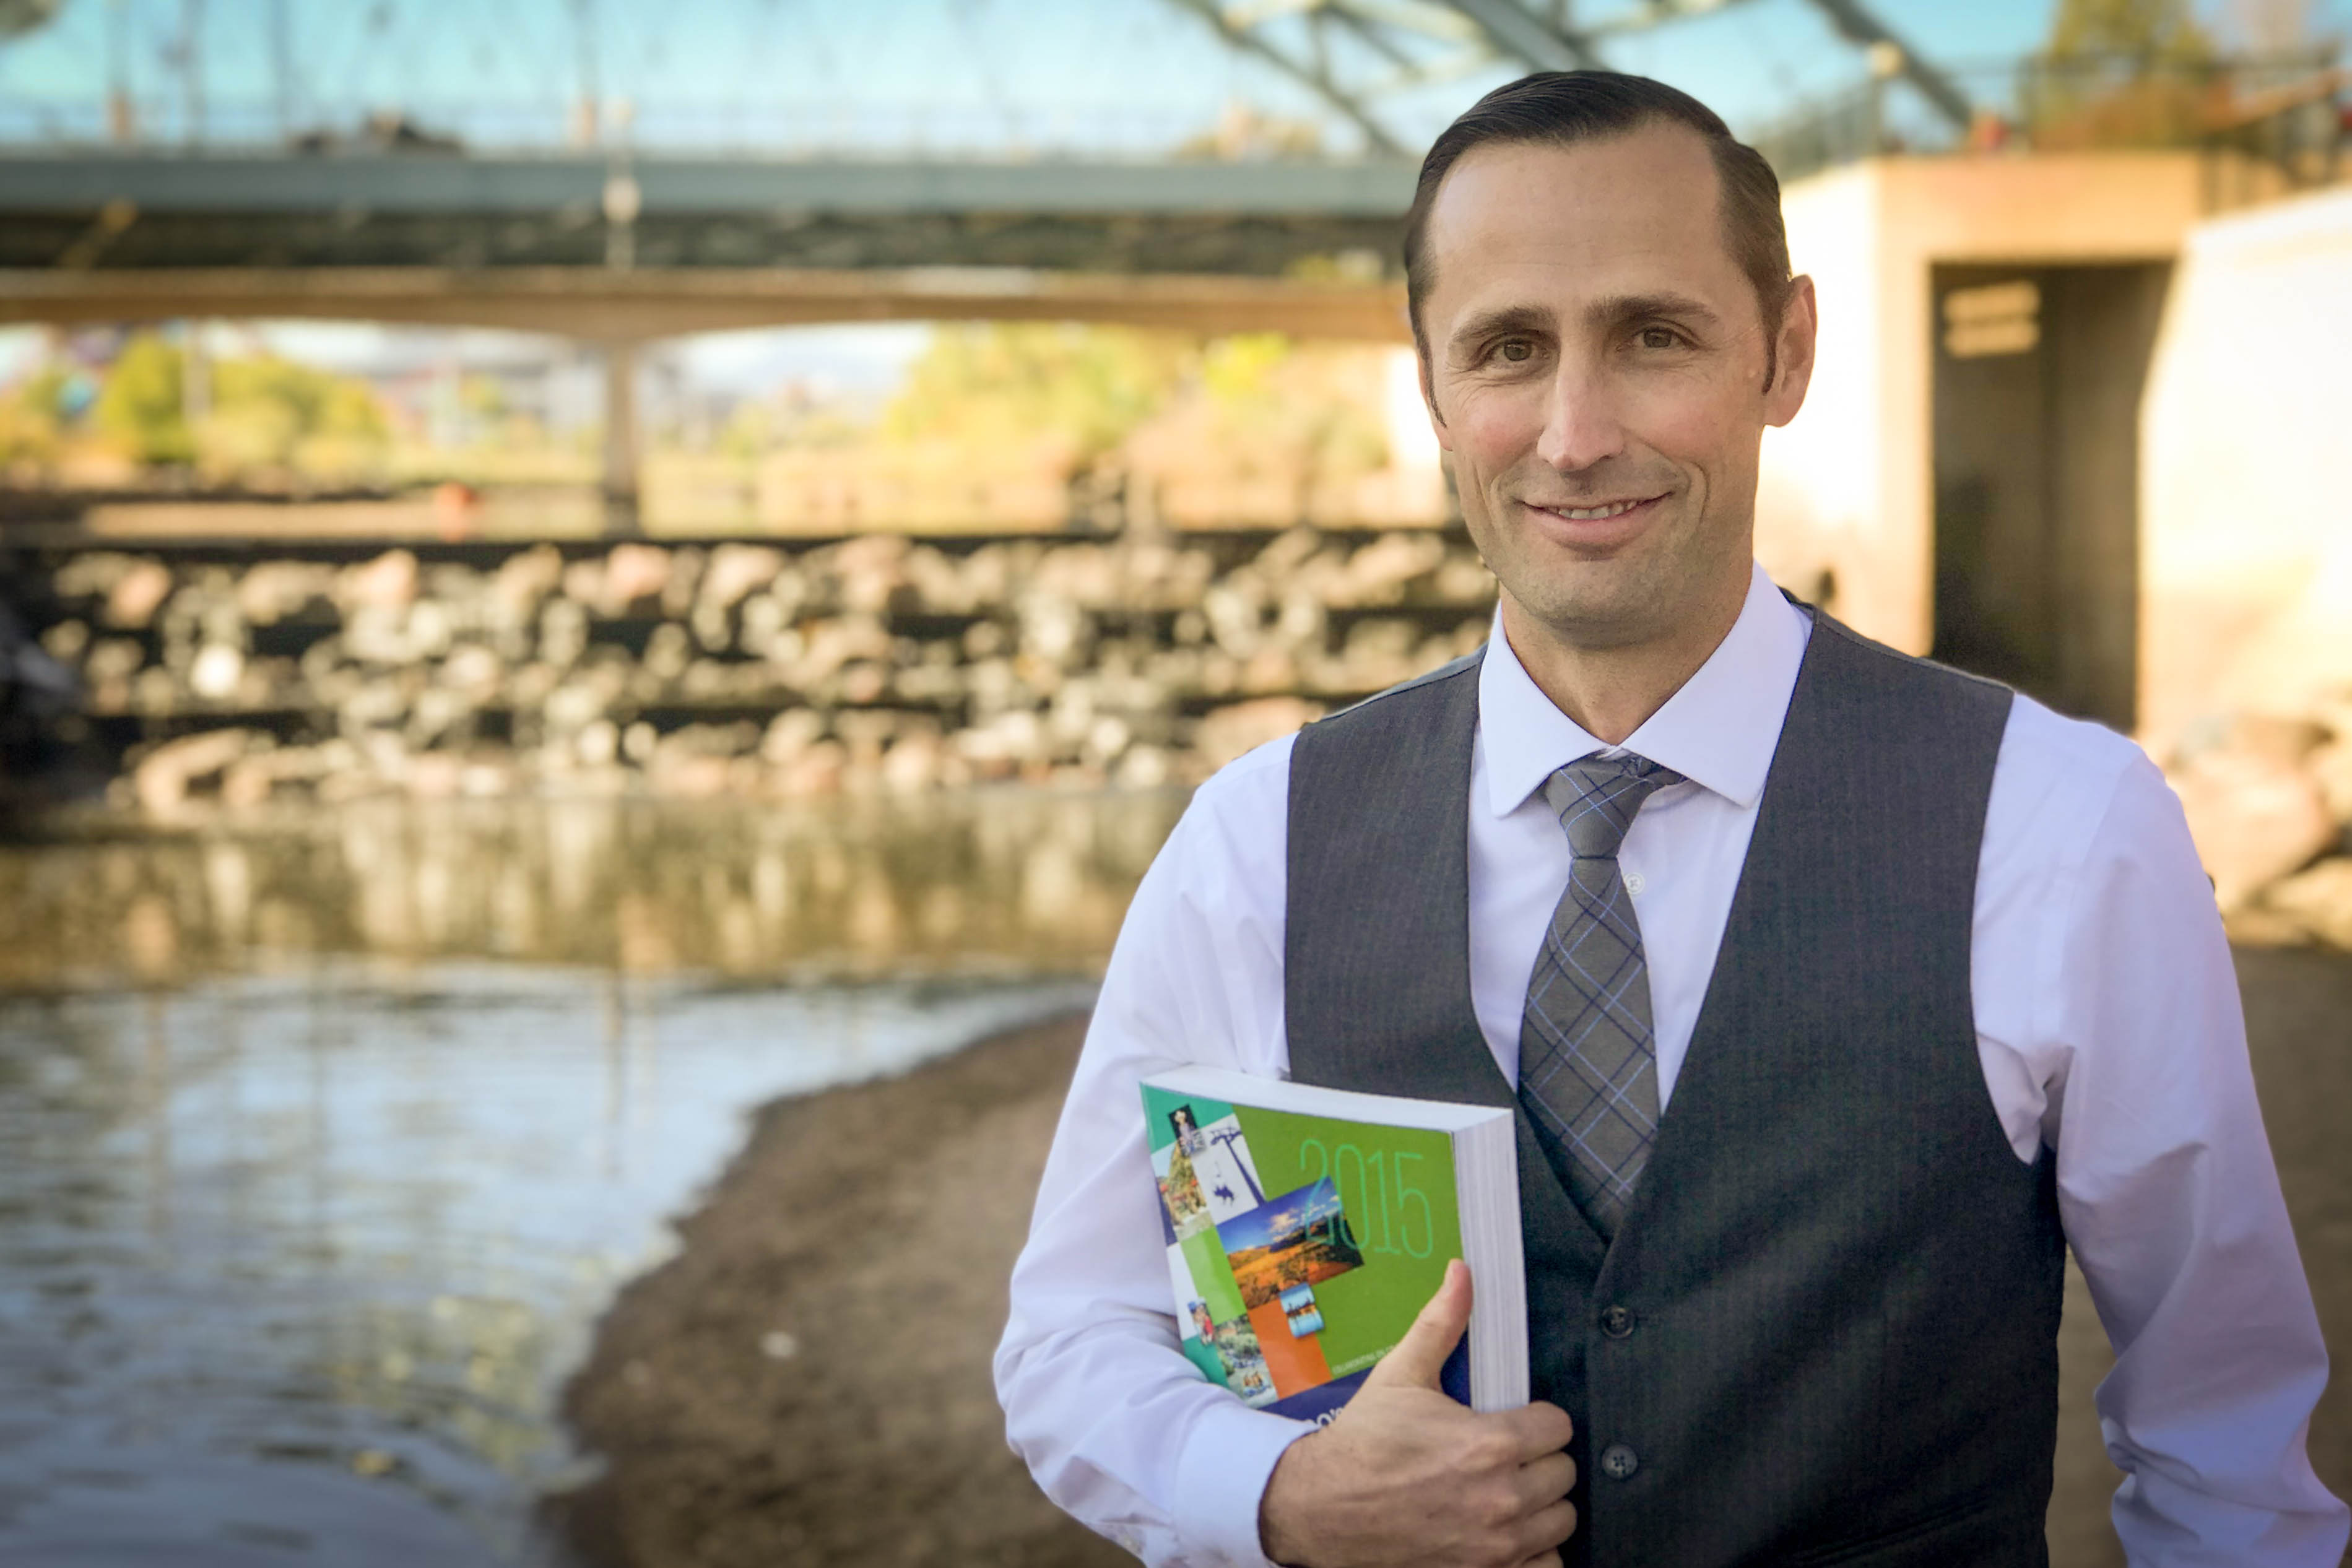 James Eklund, the architect of Colorado's Water Plan, holds a copy in front of the Platte River in Denver, Colo.